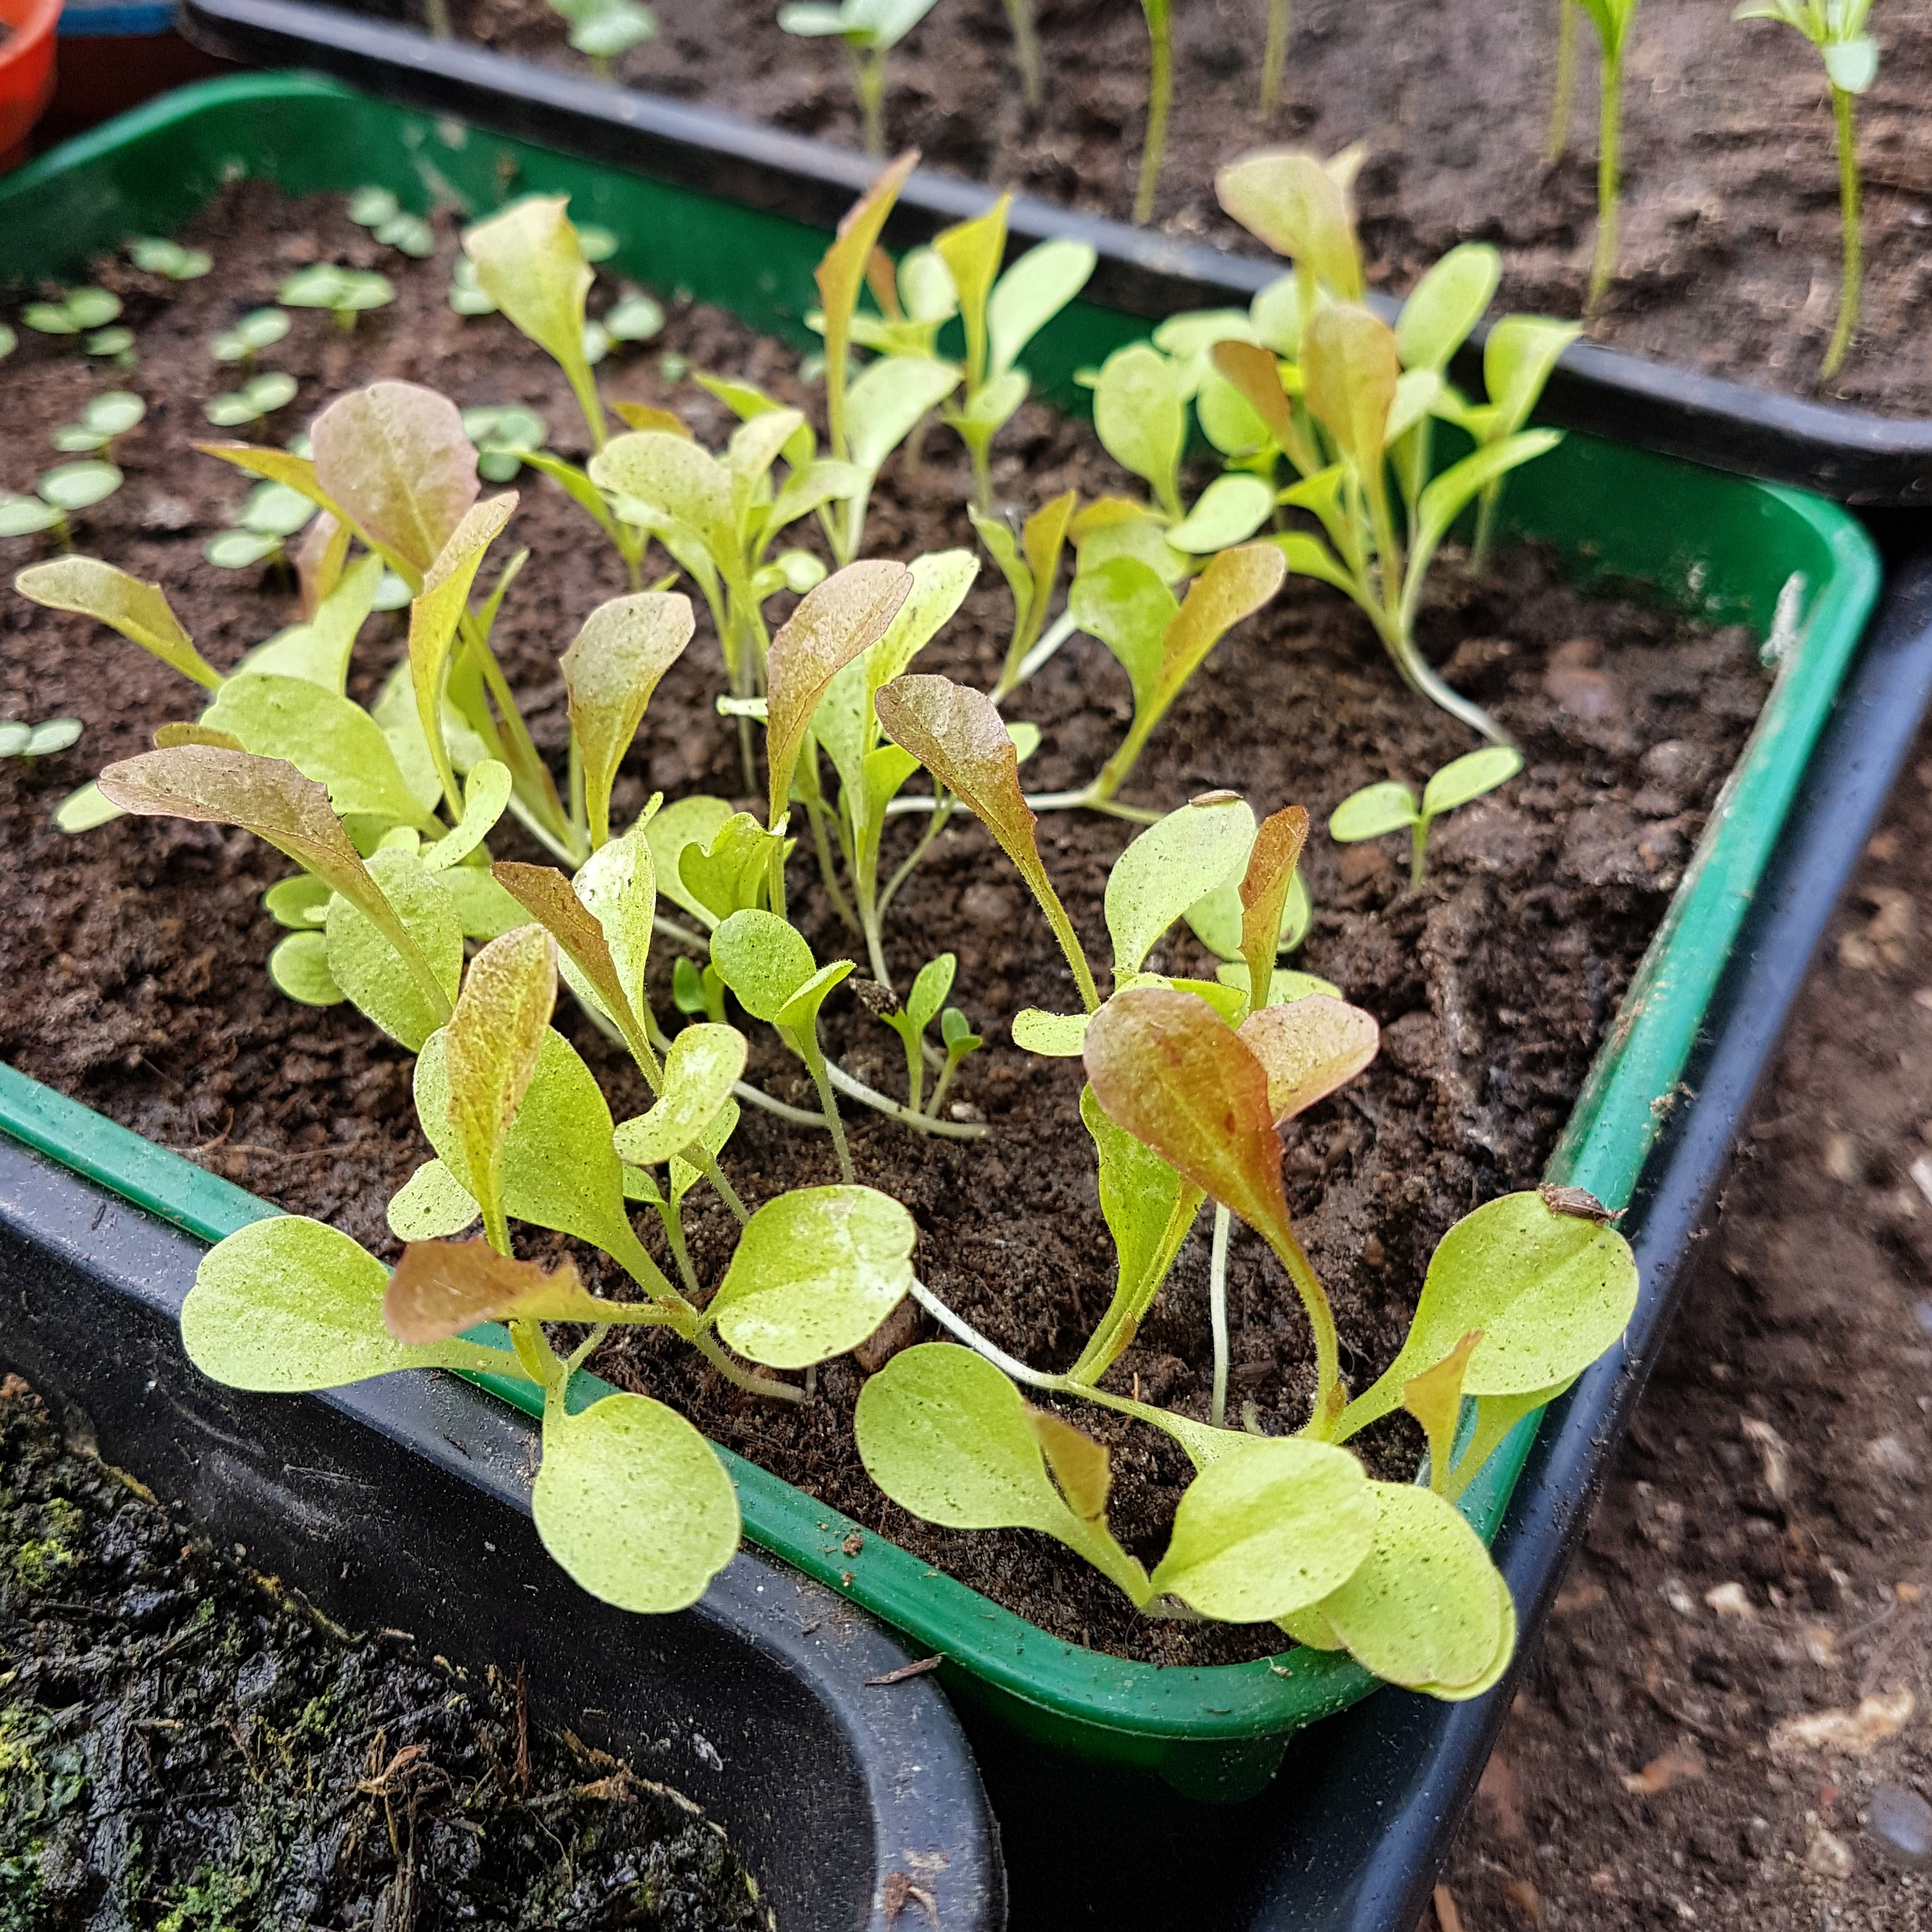 Transplanting veggie seedlings - salad bowl red lettuce